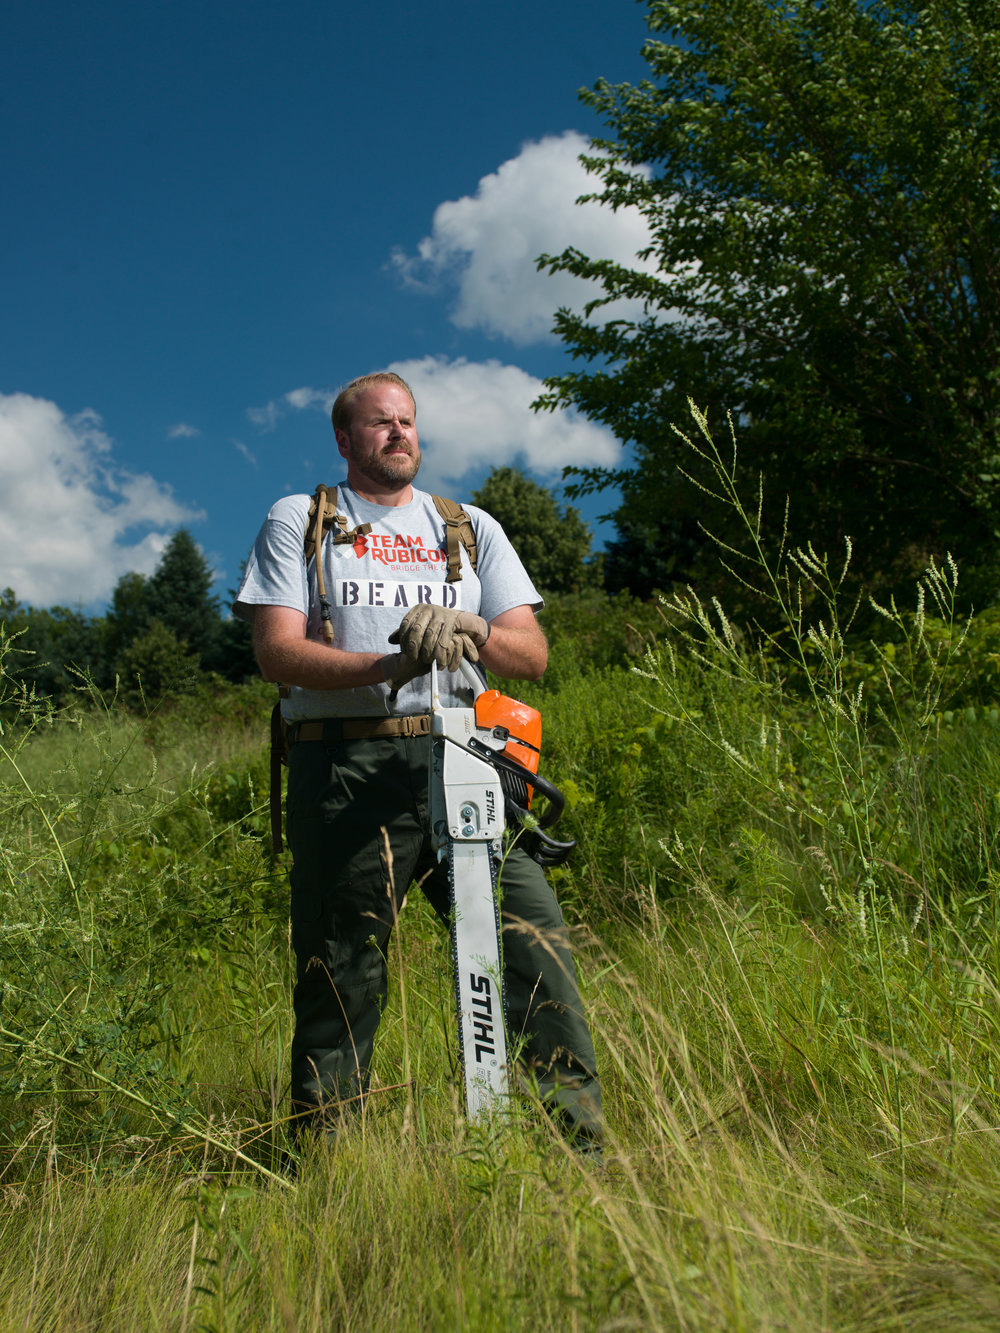 Cort Beard, Team Rubicon disaster relief volunteer who uses a chain saw to save lives.